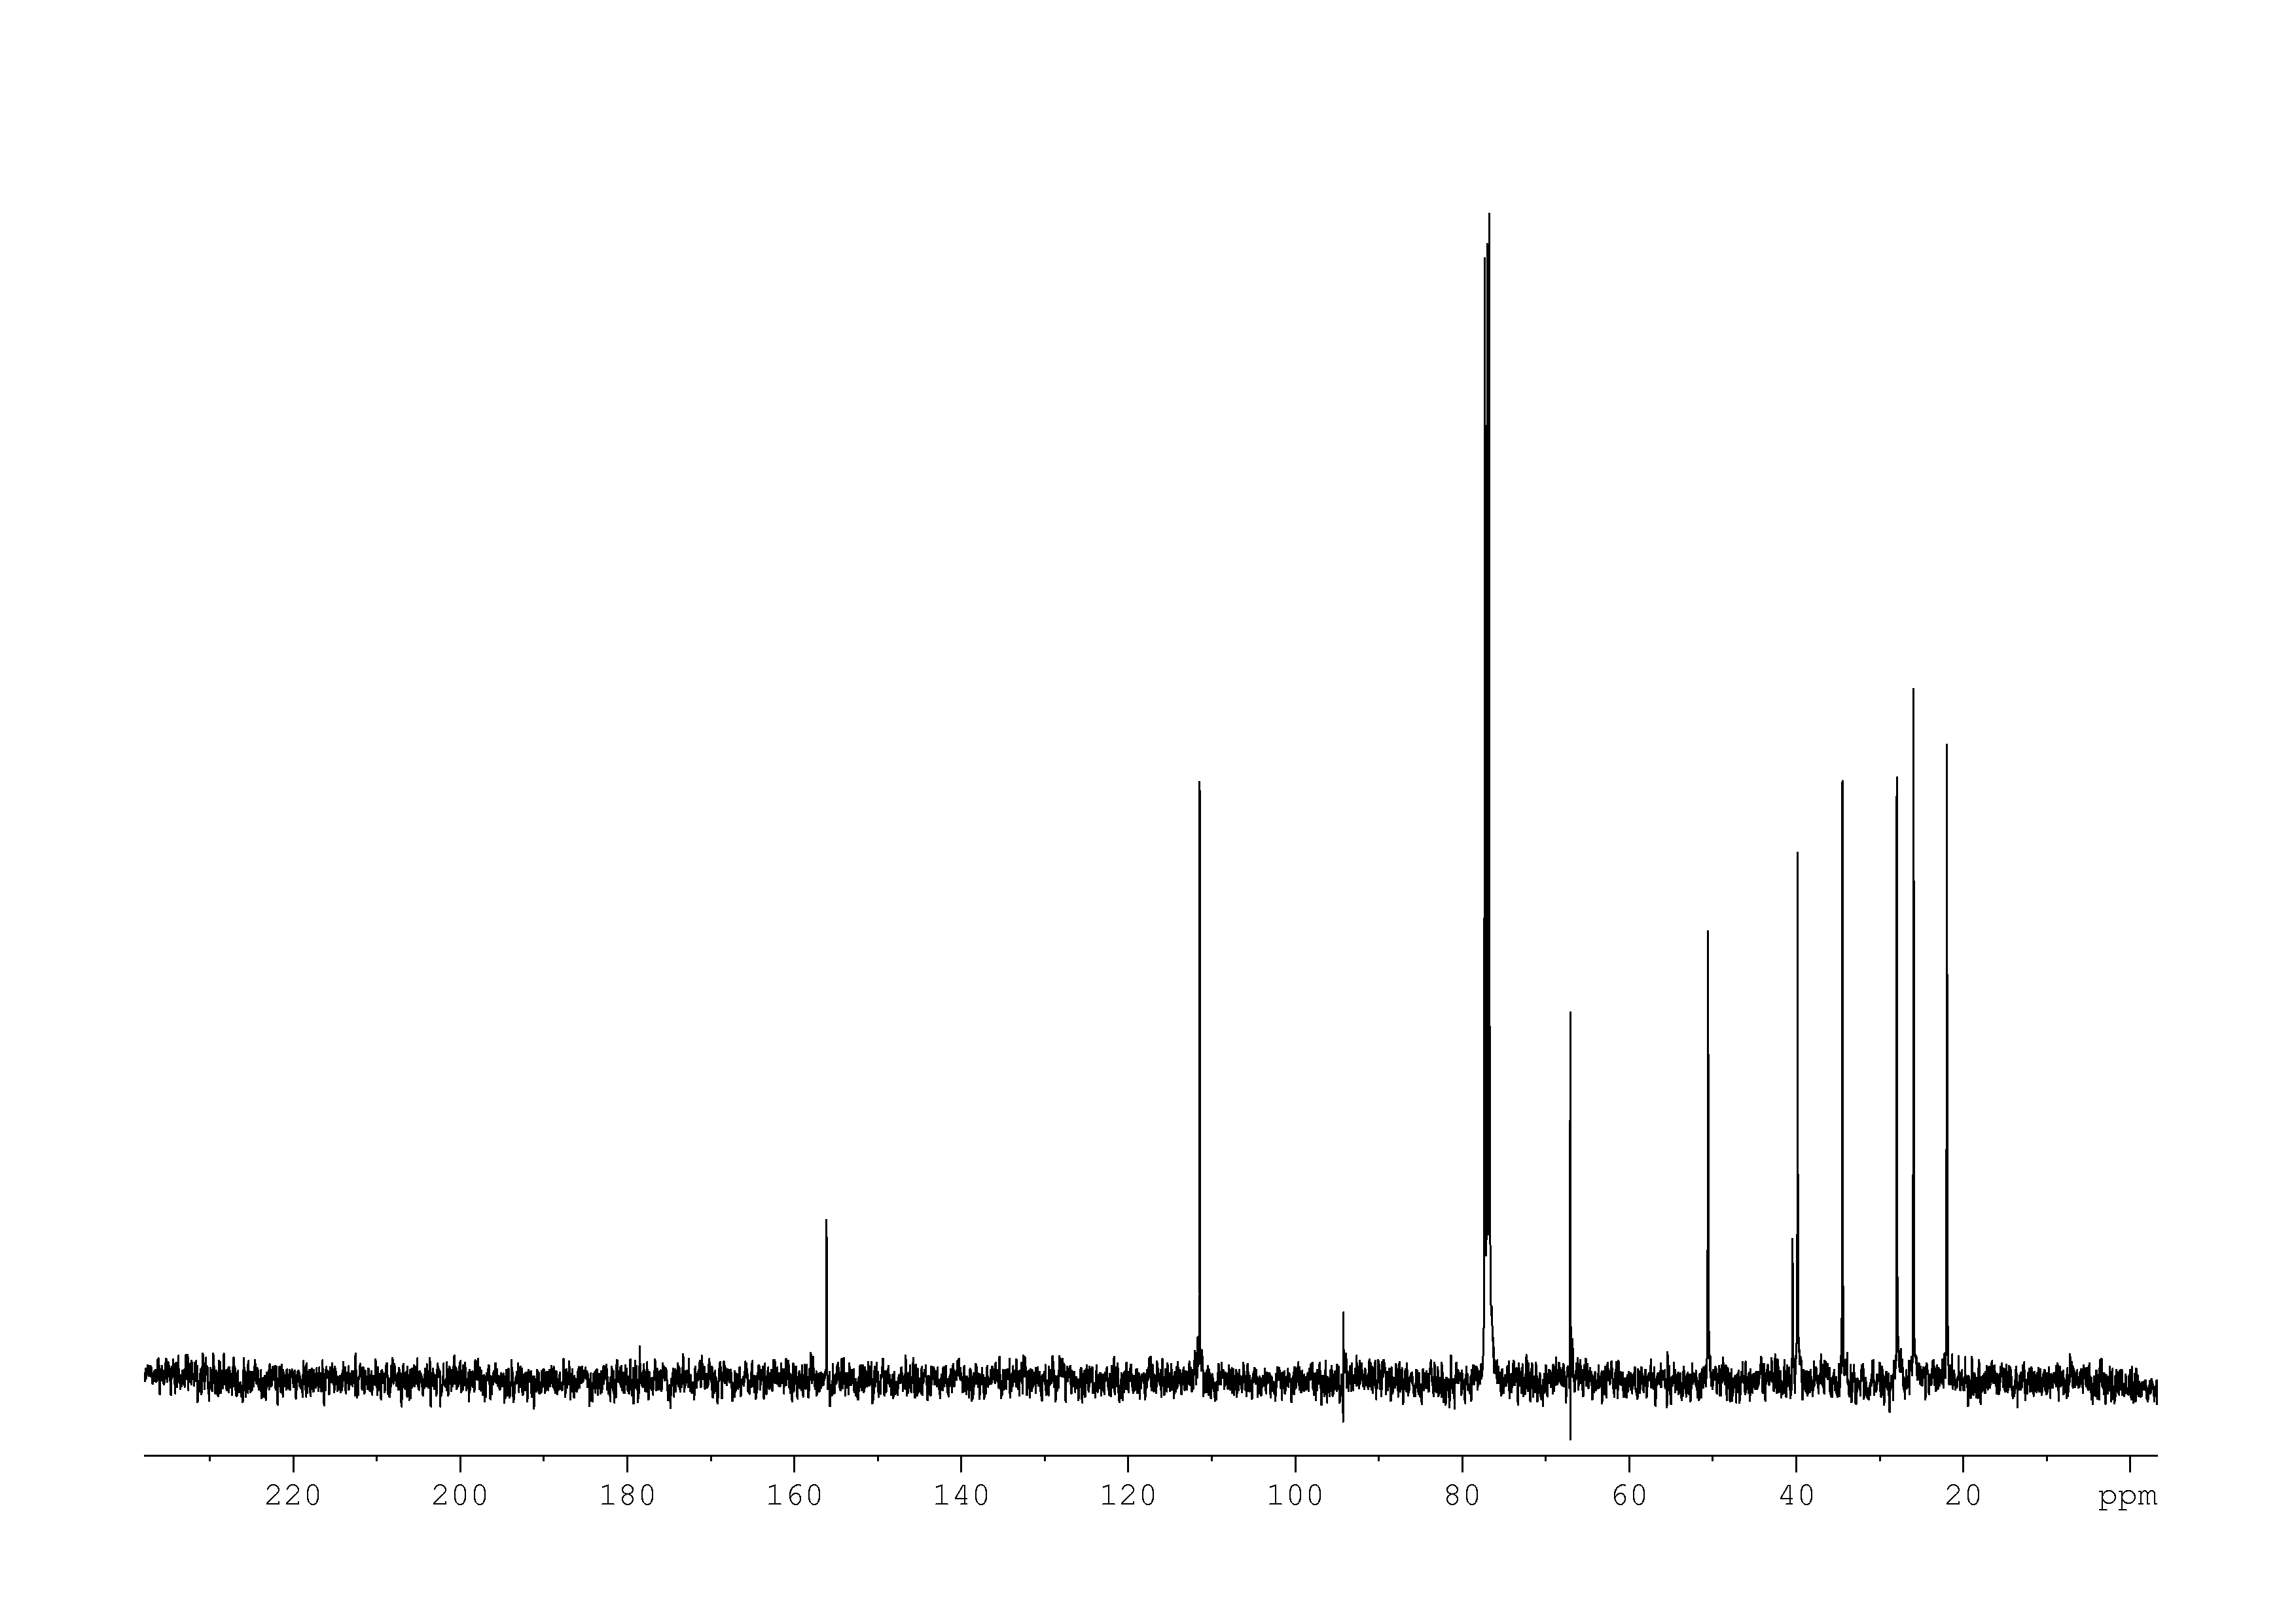 1D 13C, n/a spectrum for pinocarveol